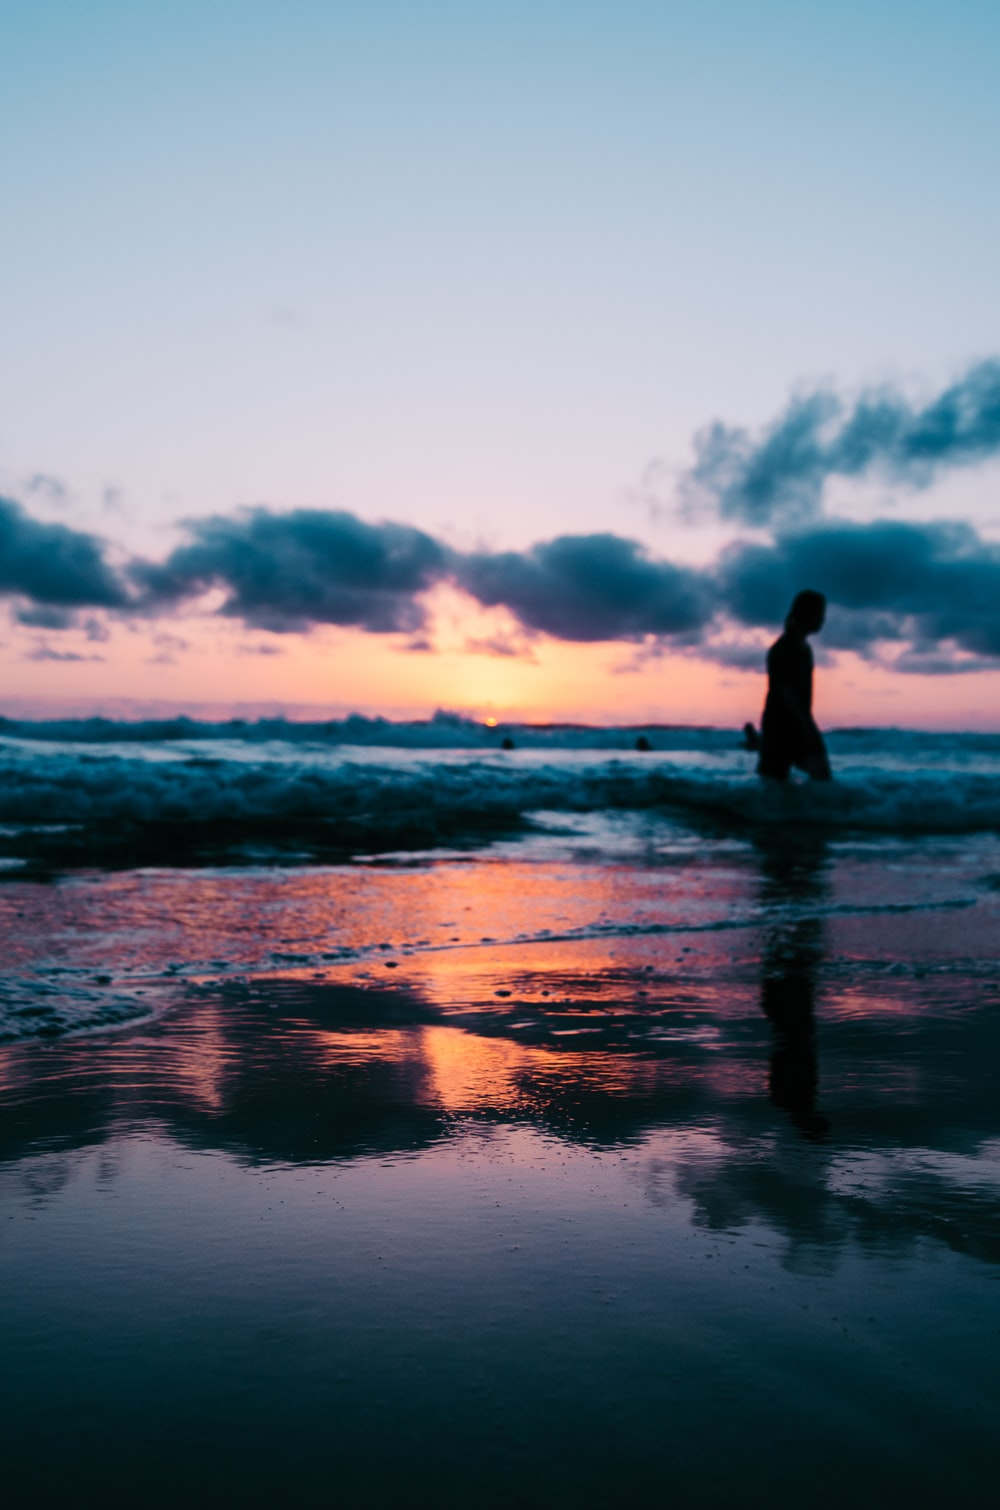 silhouette photo of a person walking on seashore under cloudy sky during golden hour